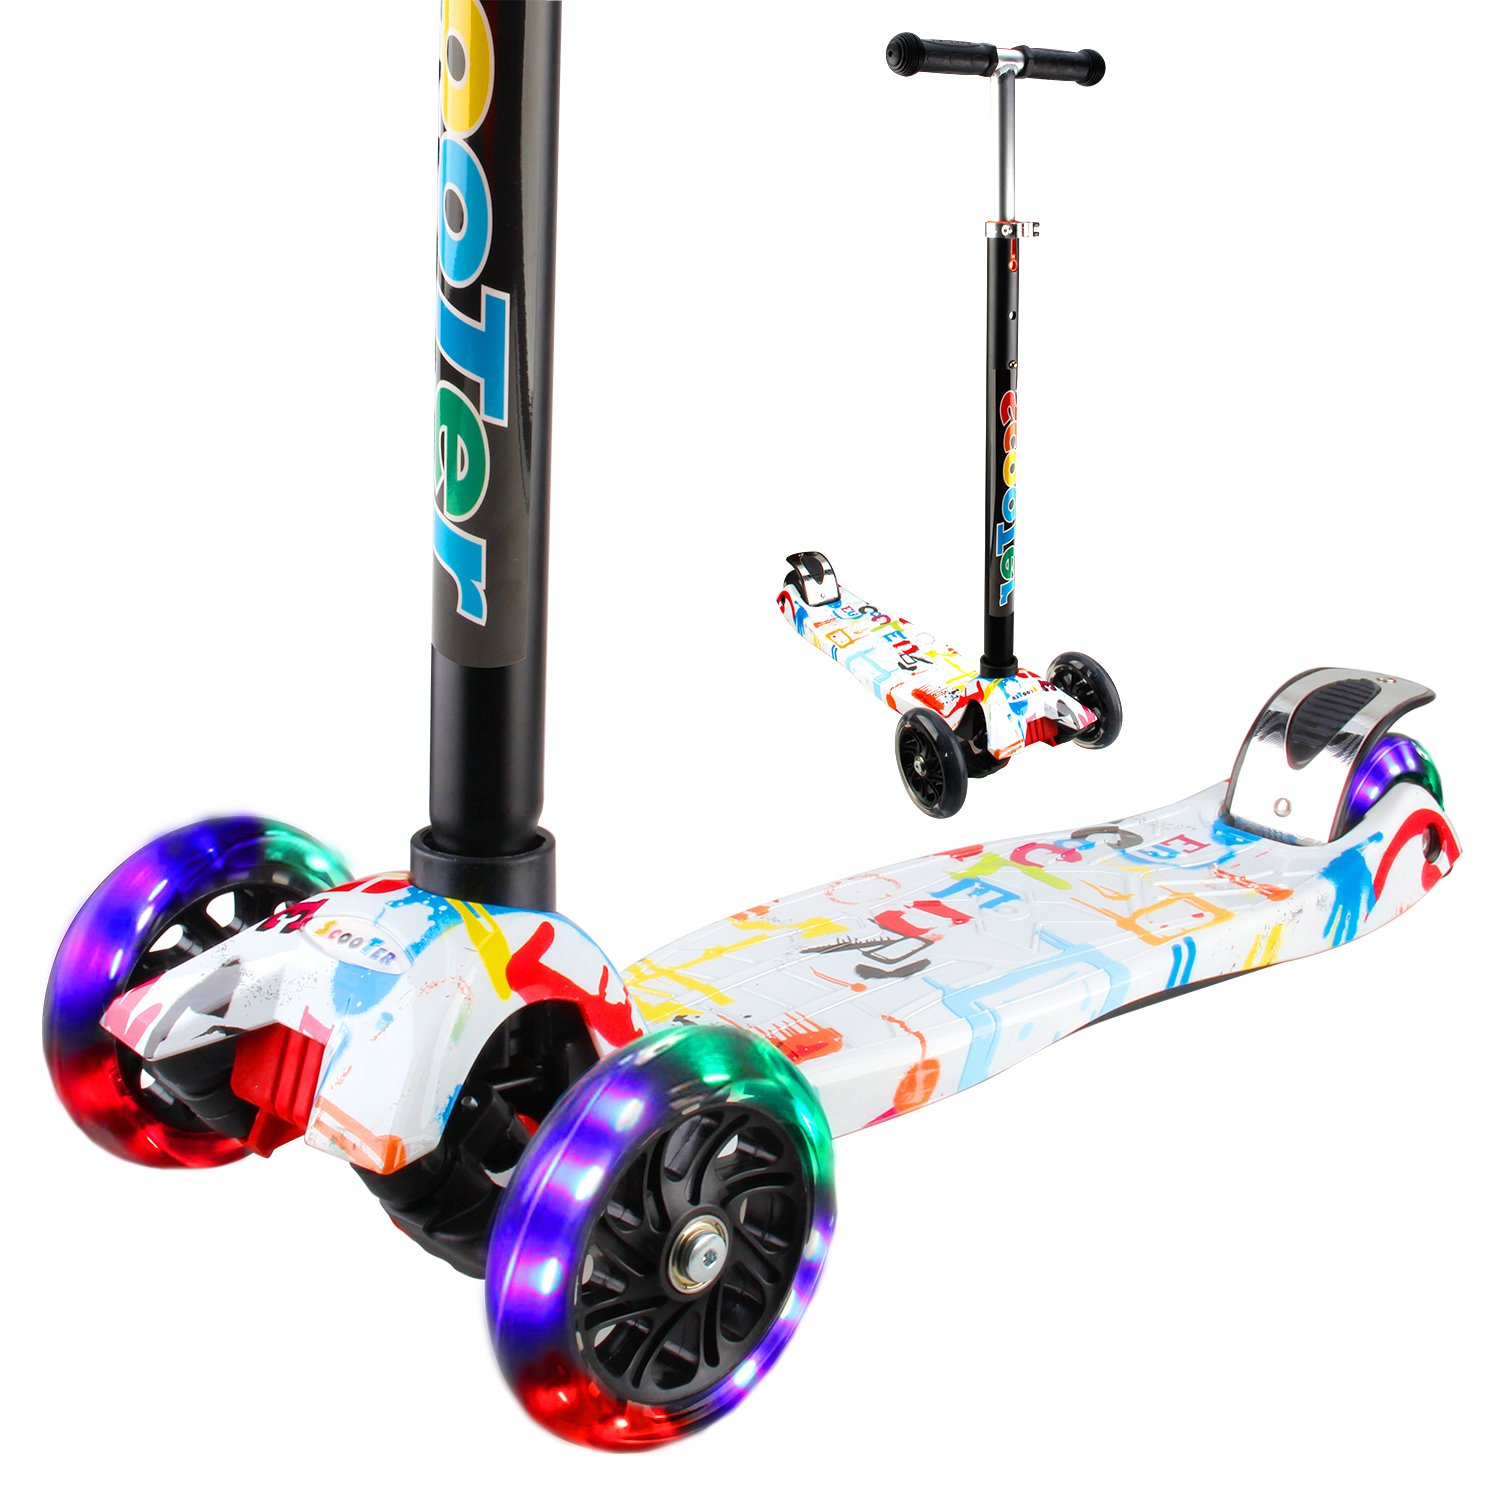 Vamslove Kick Scooter Kids Toys for Boys Girls, 3 Flashing Wheels Adjustable Height Non-slip Handle Widening Deck Kids Scooter-Birthday Toys for Ages 3 4 5 6 7 8 + Years Old (Rainbow)